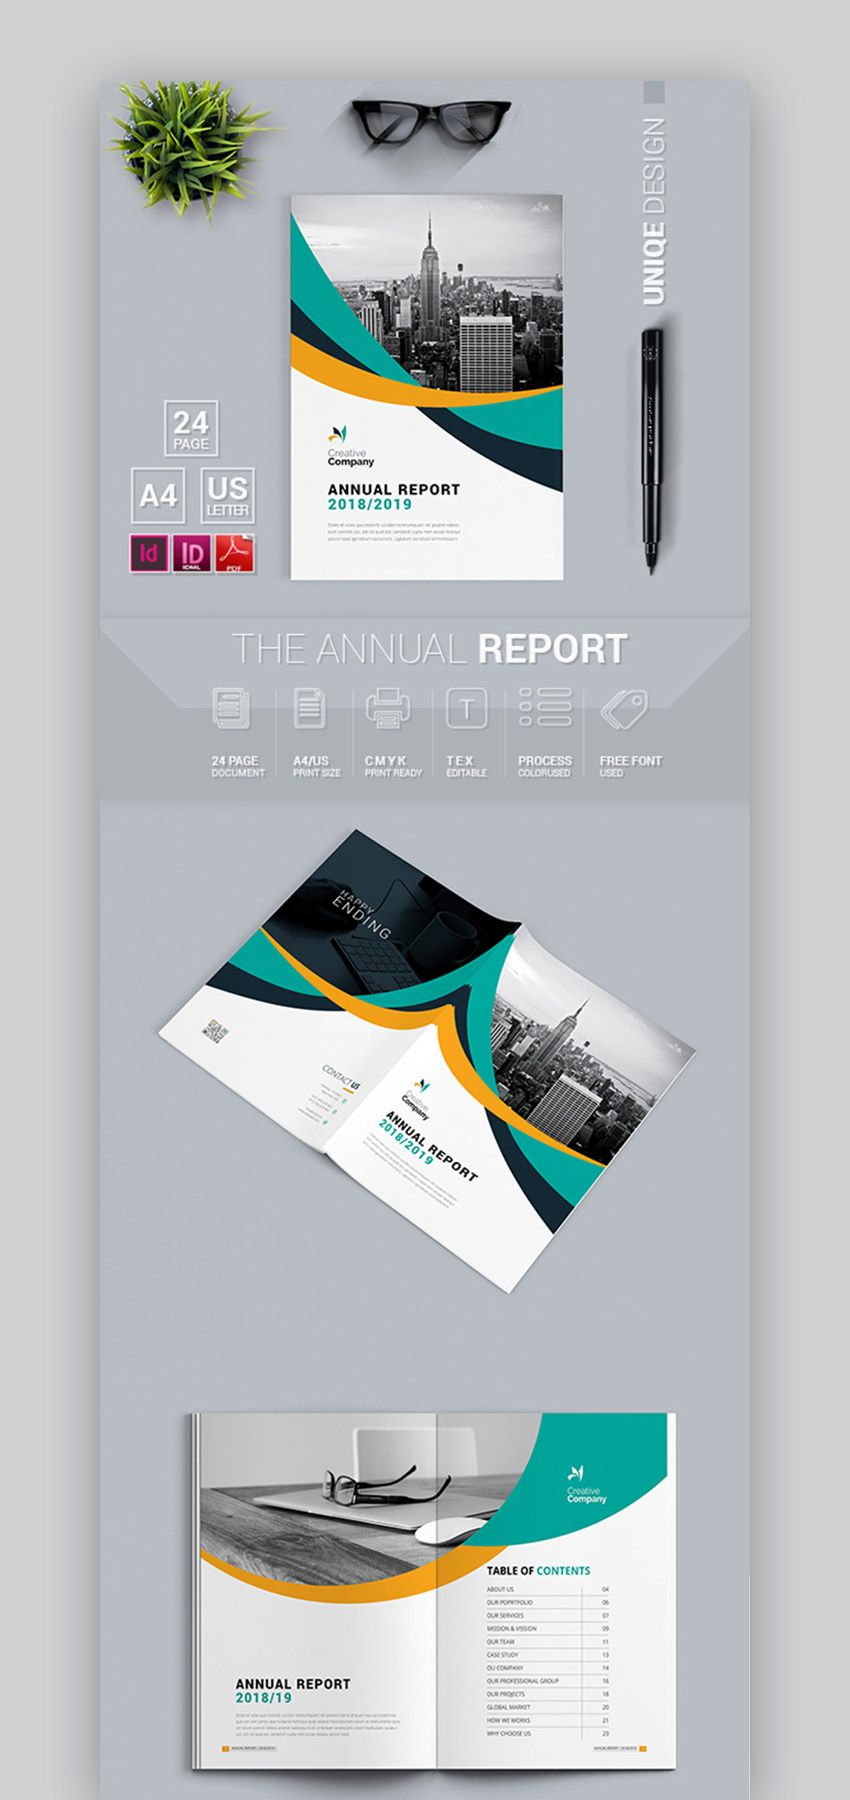 25 Best Business Proposal Templates 2019 Indesign layout